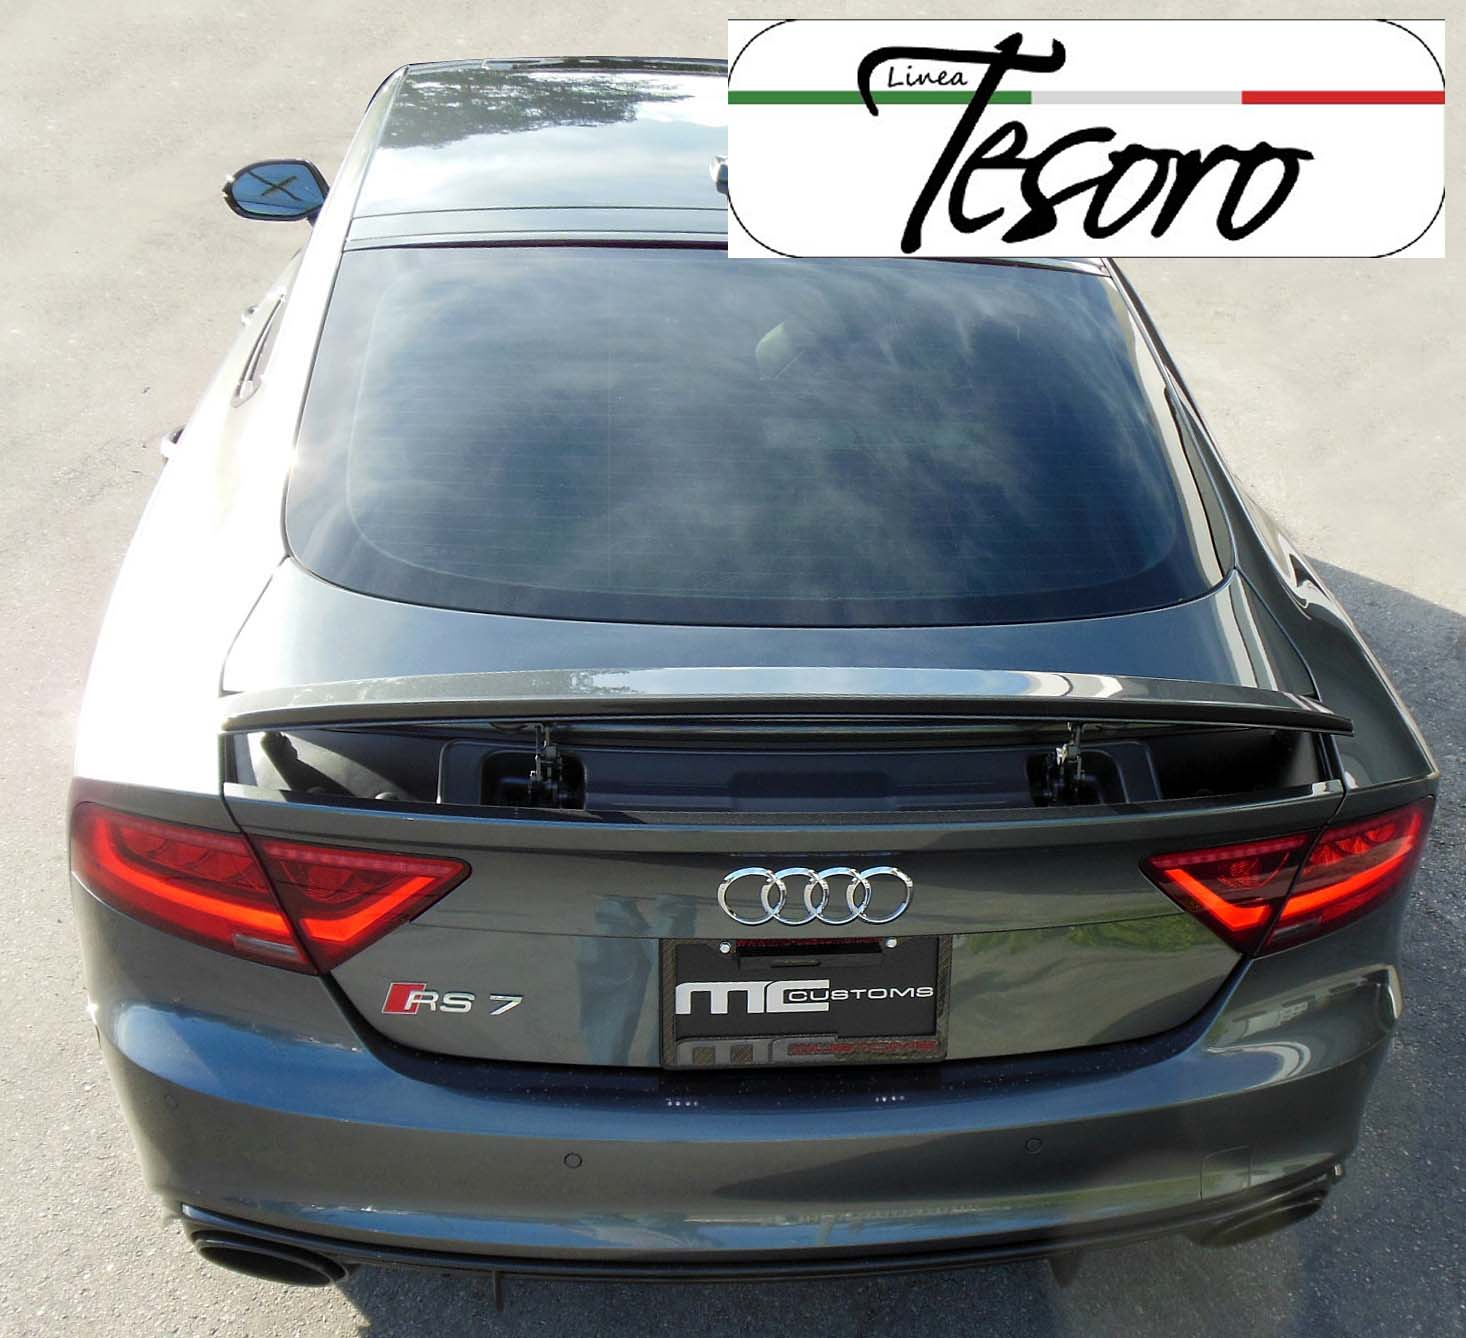 2017 Audi Rs 7 Camshaft: 2010-2017 AUDI A7 / S7 / RS7 Euro Style Rear Trunk Lip Spoiler